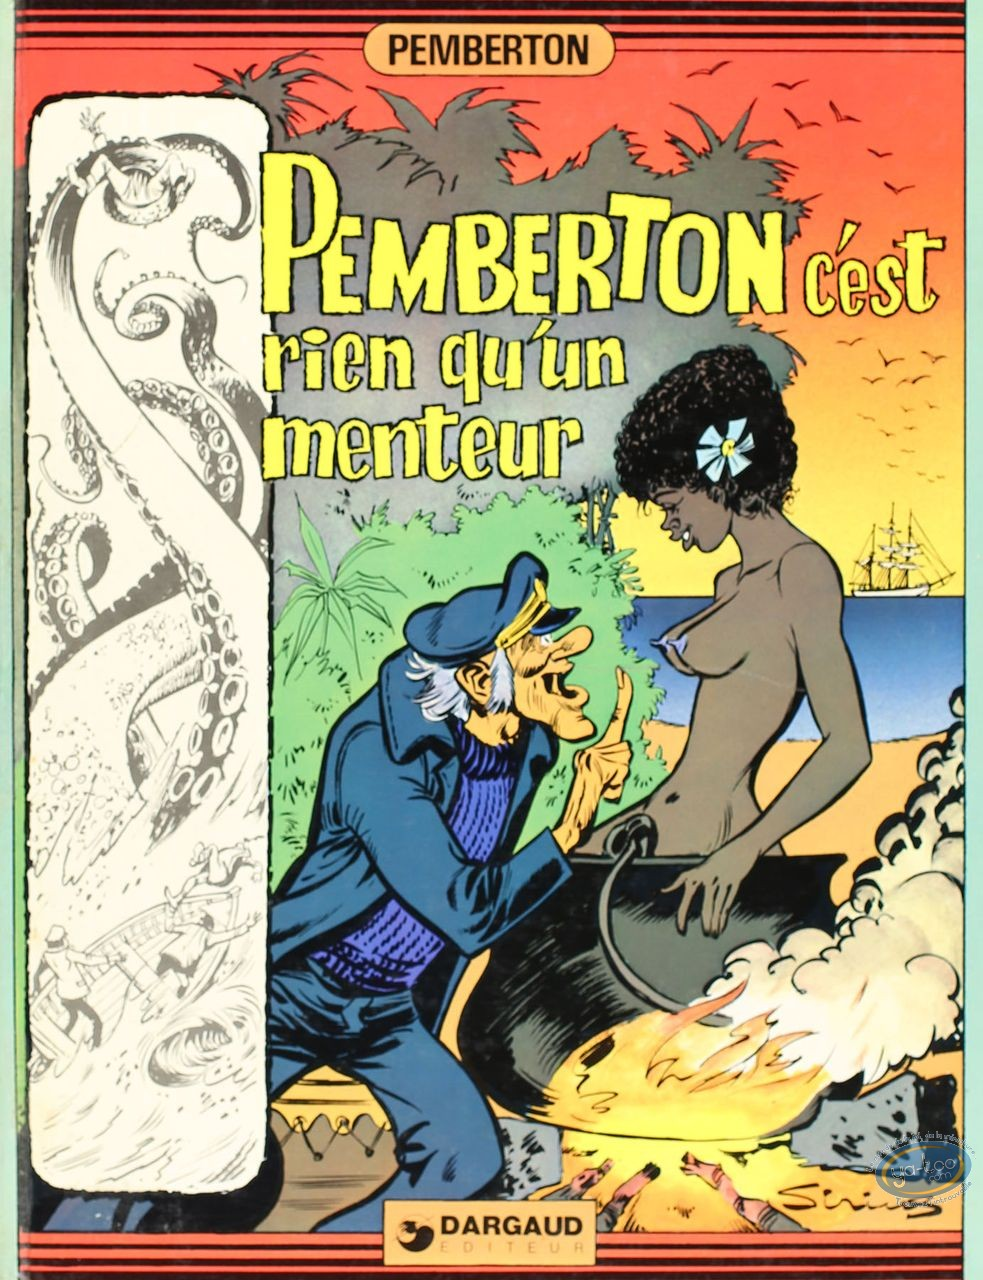 Listed European Comic Books, Pemberton : Pemberton c'est rien qu'un menteur (very good condition)